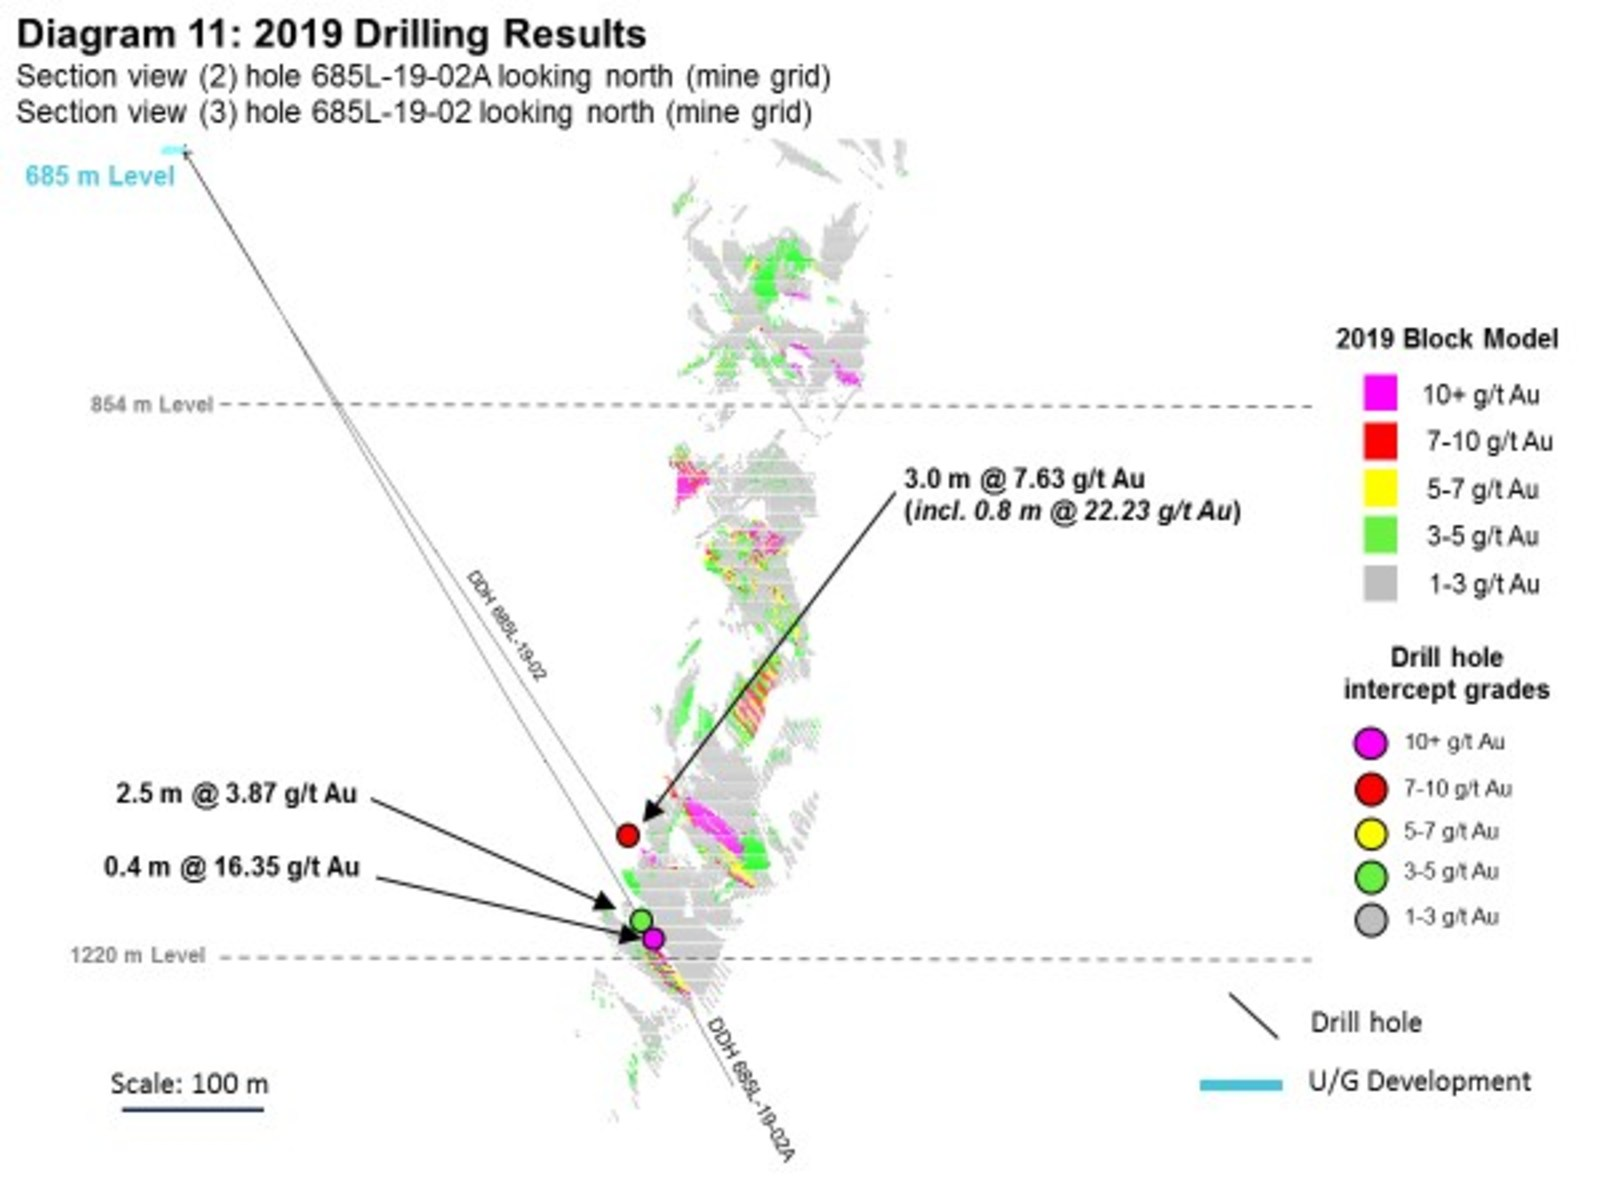 Diagram 11: 2019 Drilling Results